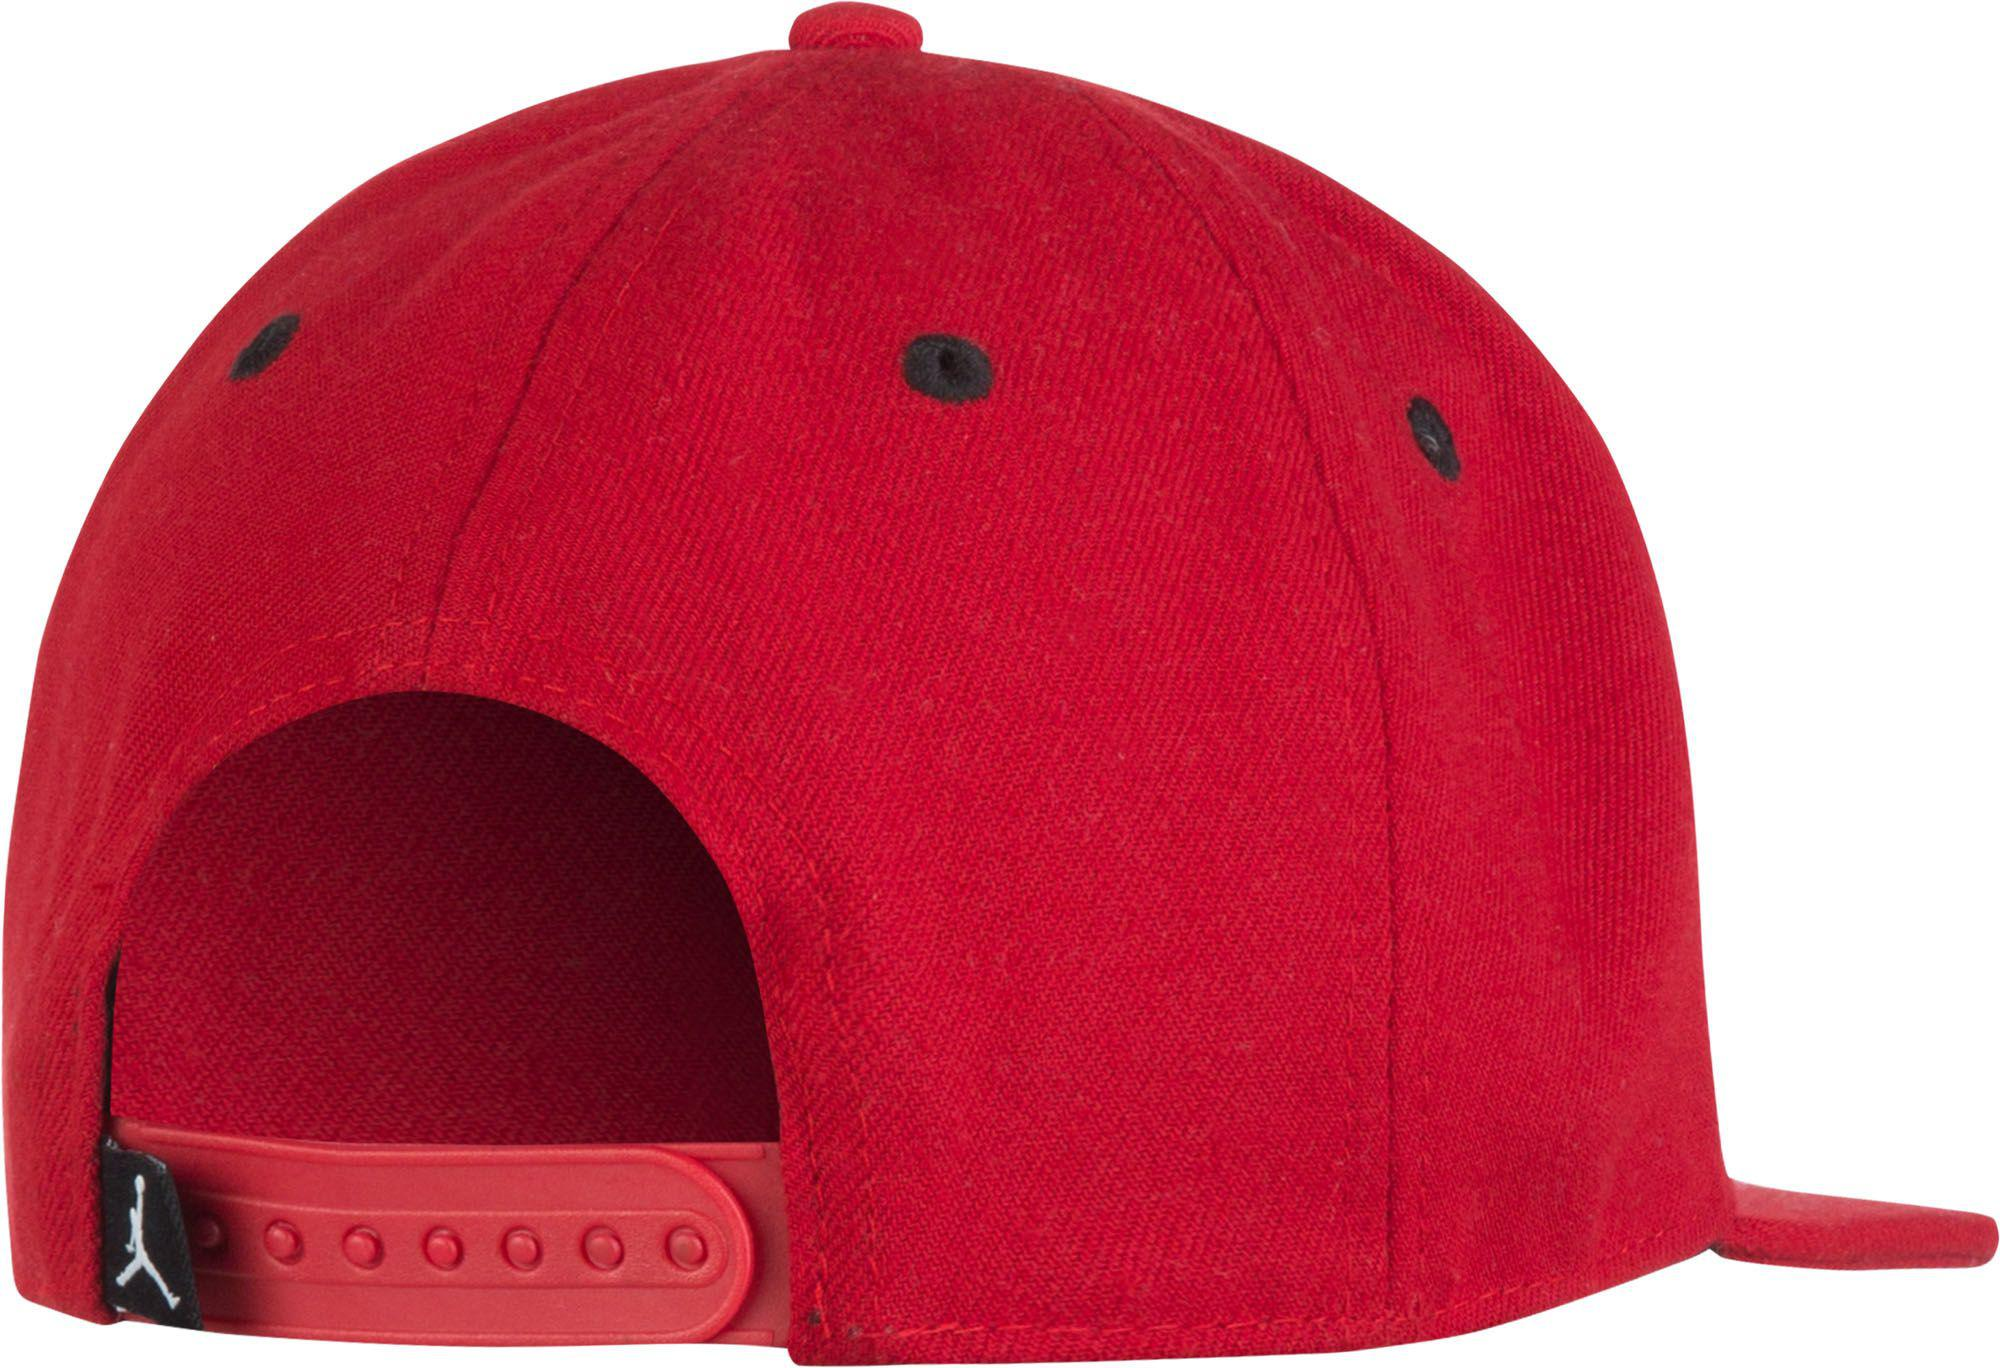 2a26a46a975 Nike - Red Oys  Jumpman Mesh Snapback Hat for Men - Lyst. View fullscreen